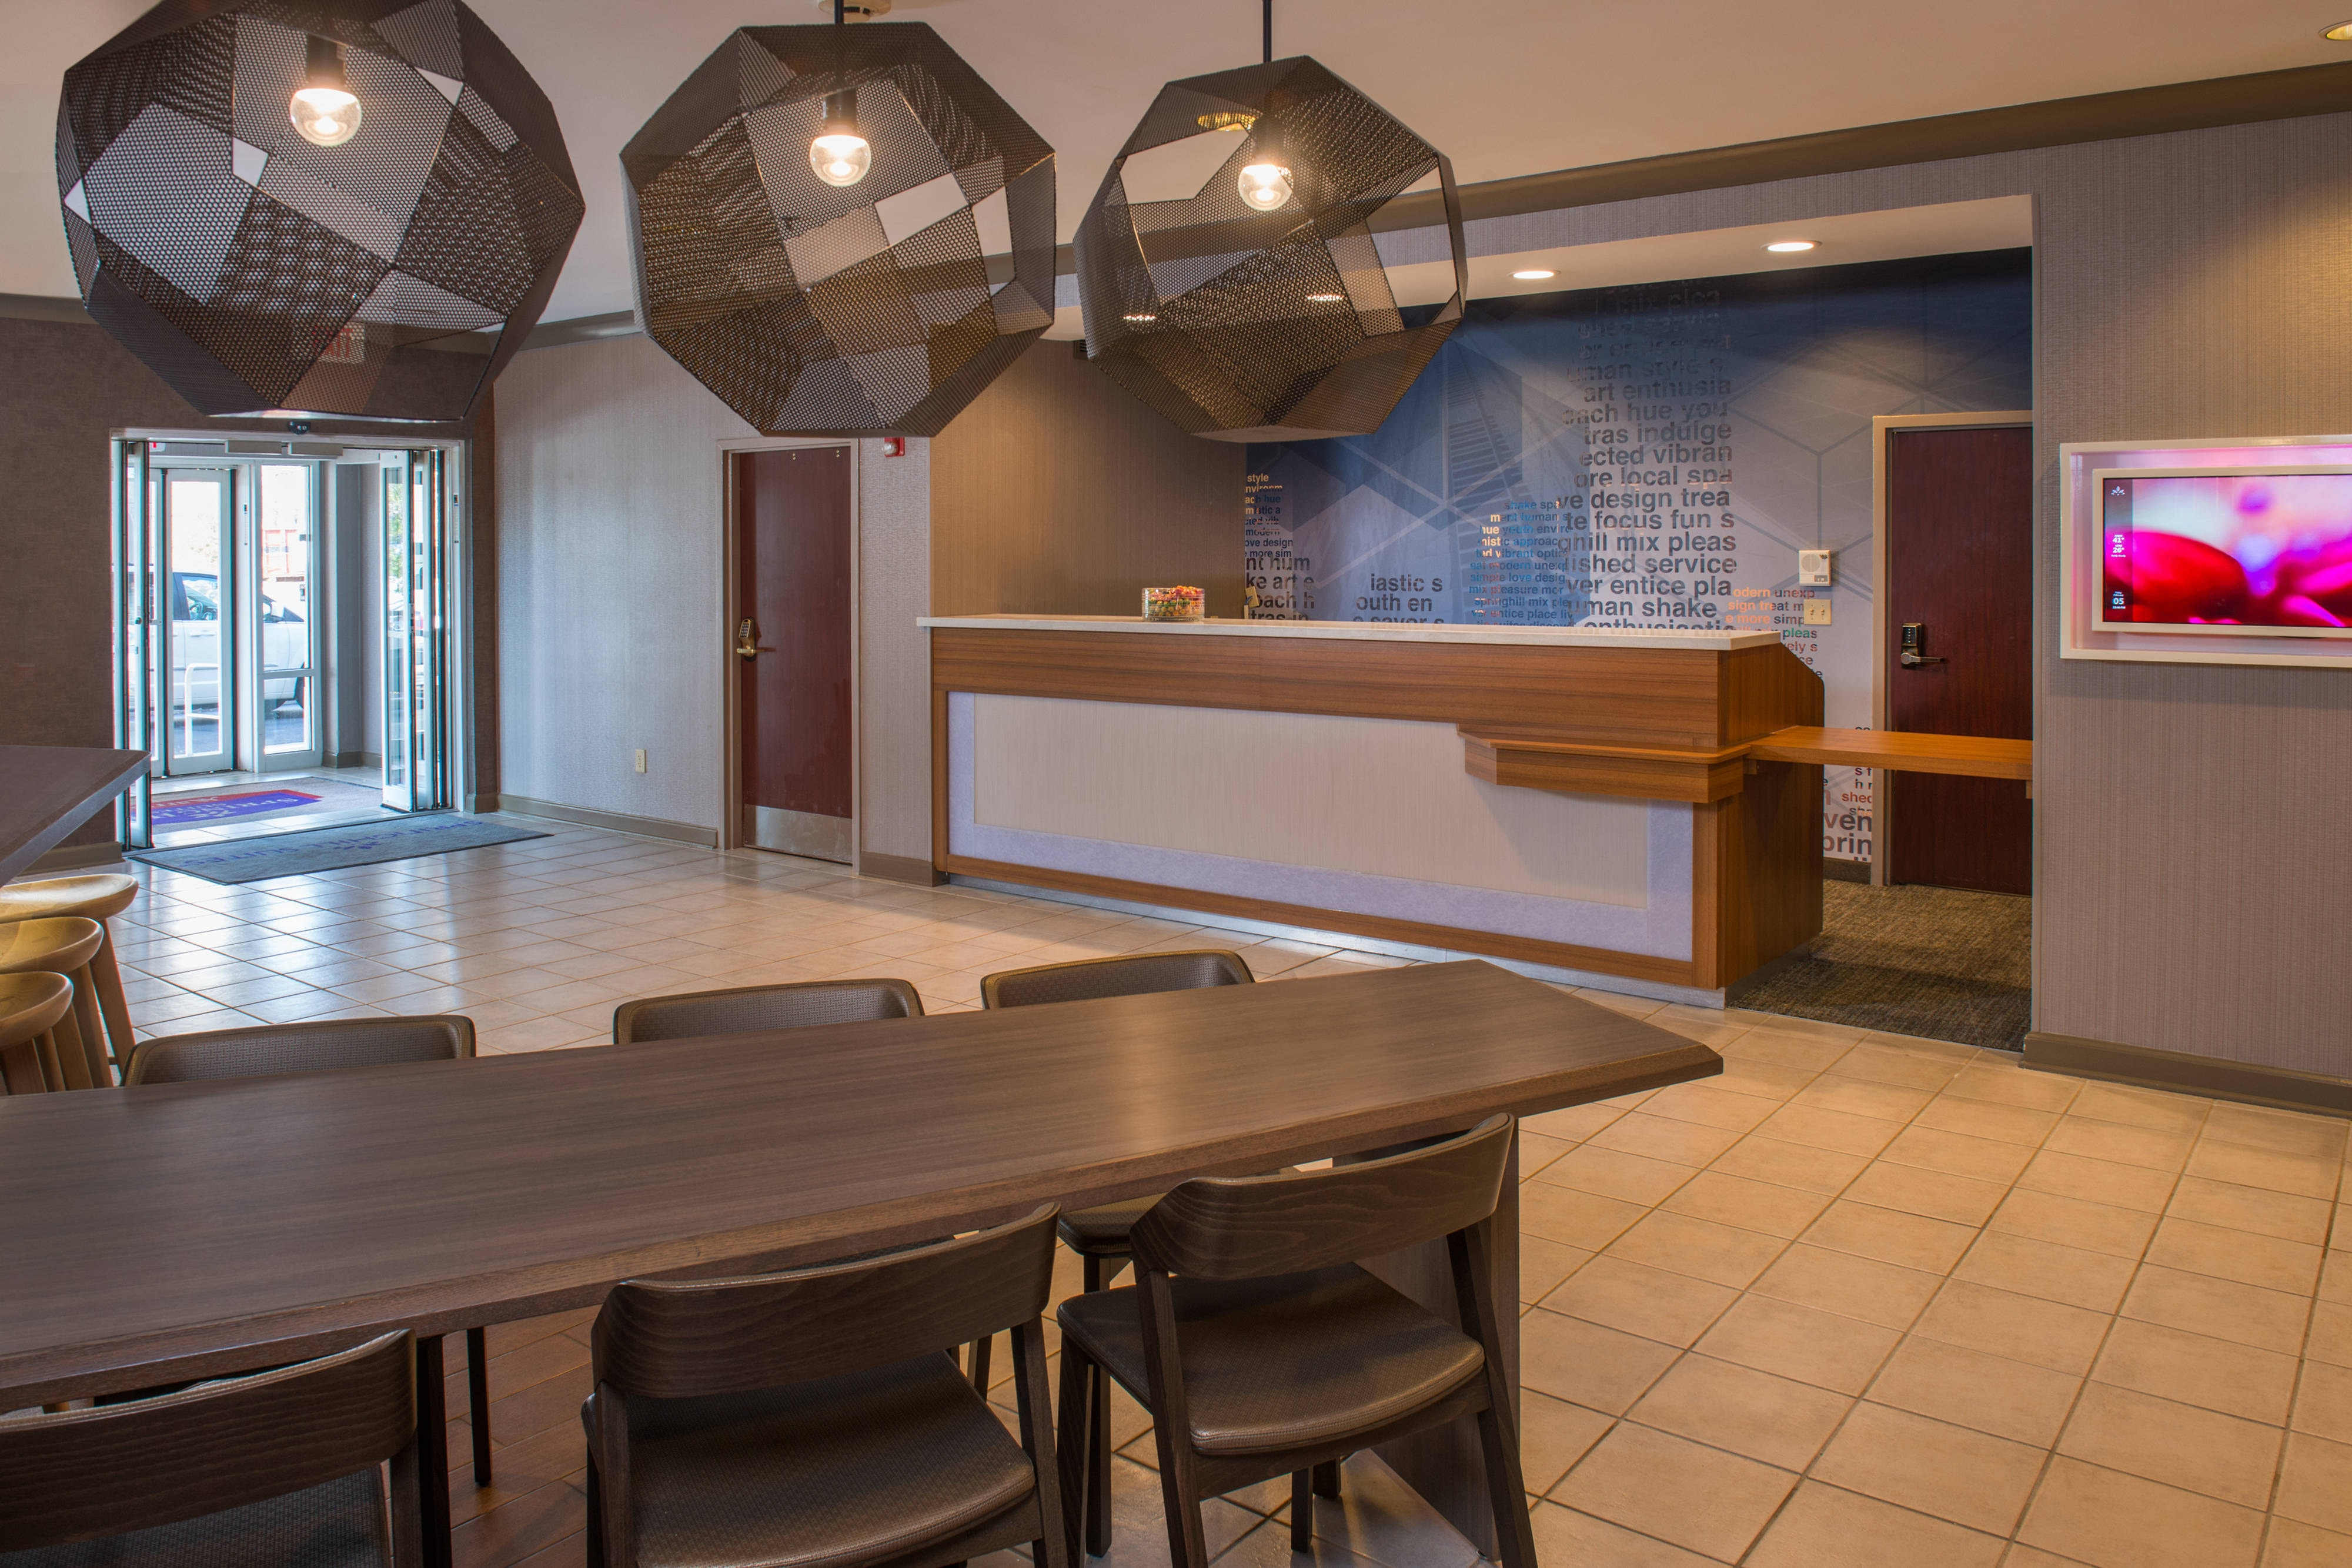 SpringHill Suites Herndon Lobby Table